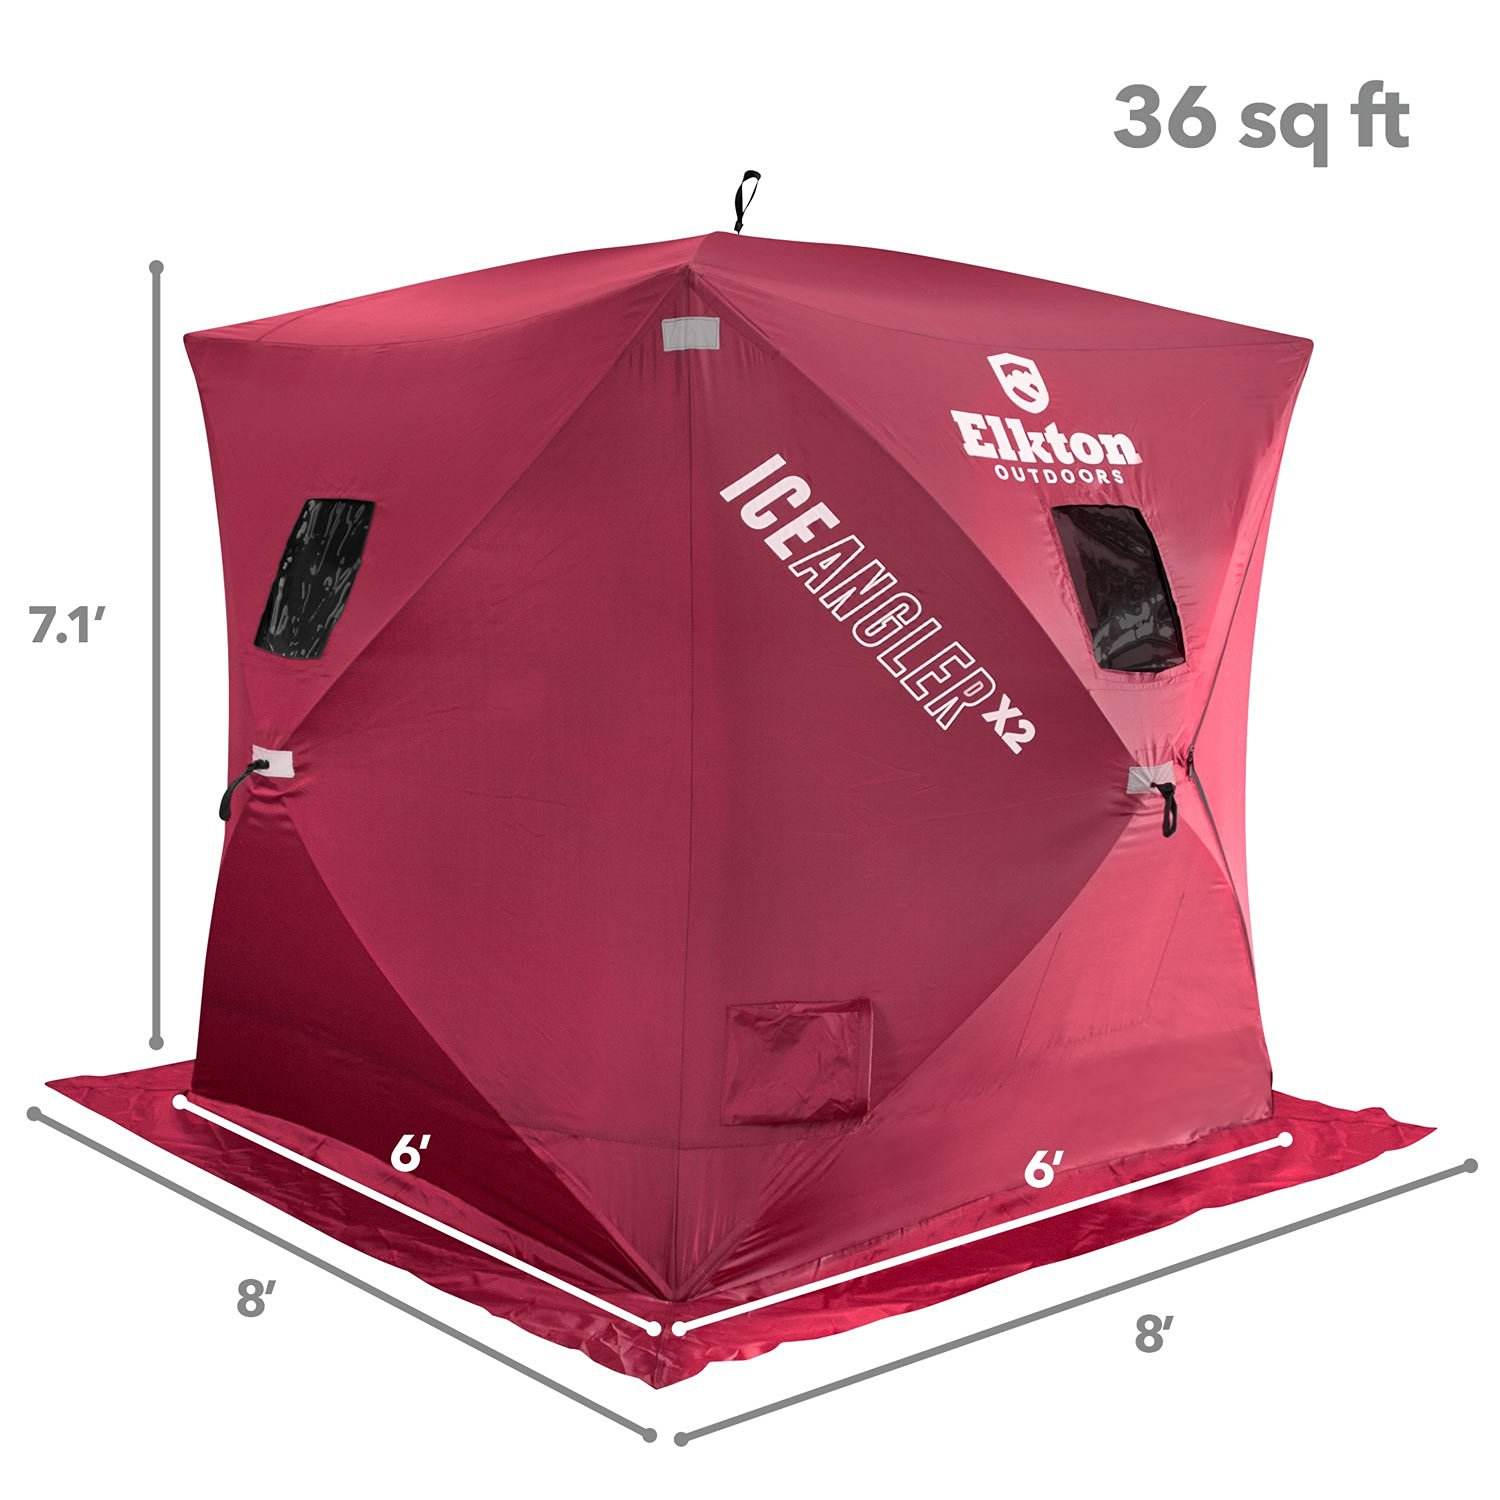 Elktron Portable Pop-Up 3 Person Ice Shelter